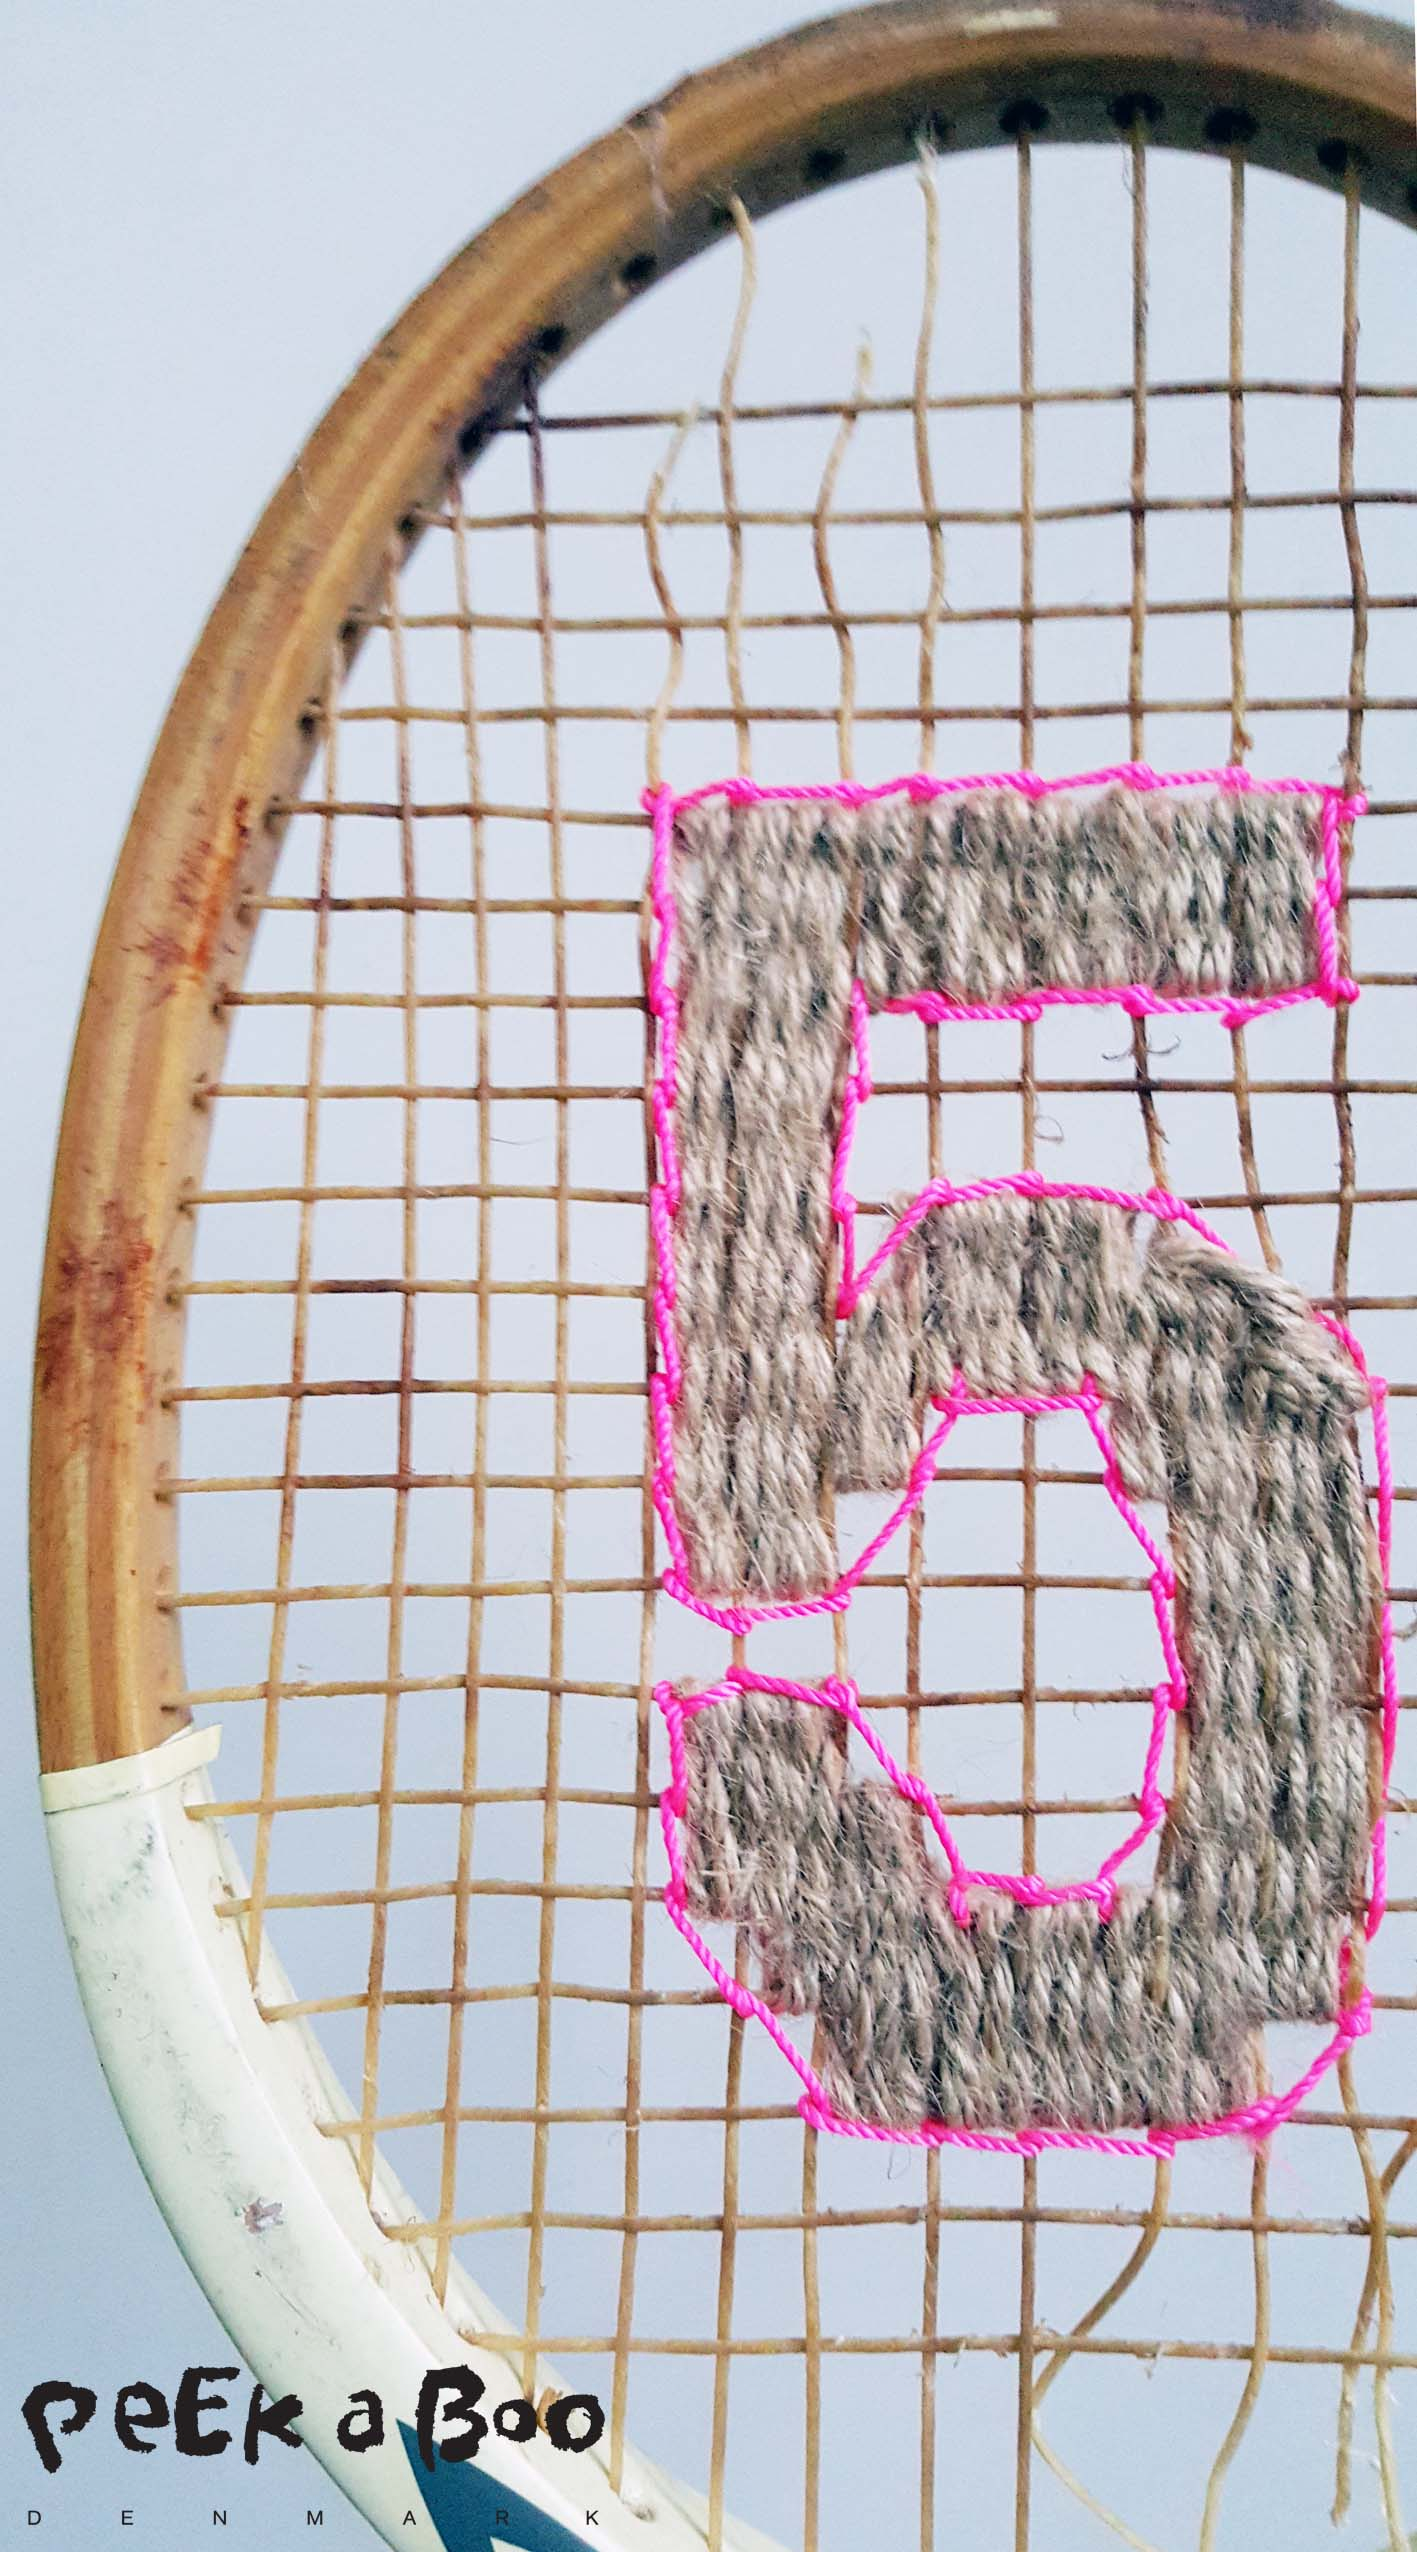 DIY vintage tennis racket for your home decor. Made by Peekaboo design.